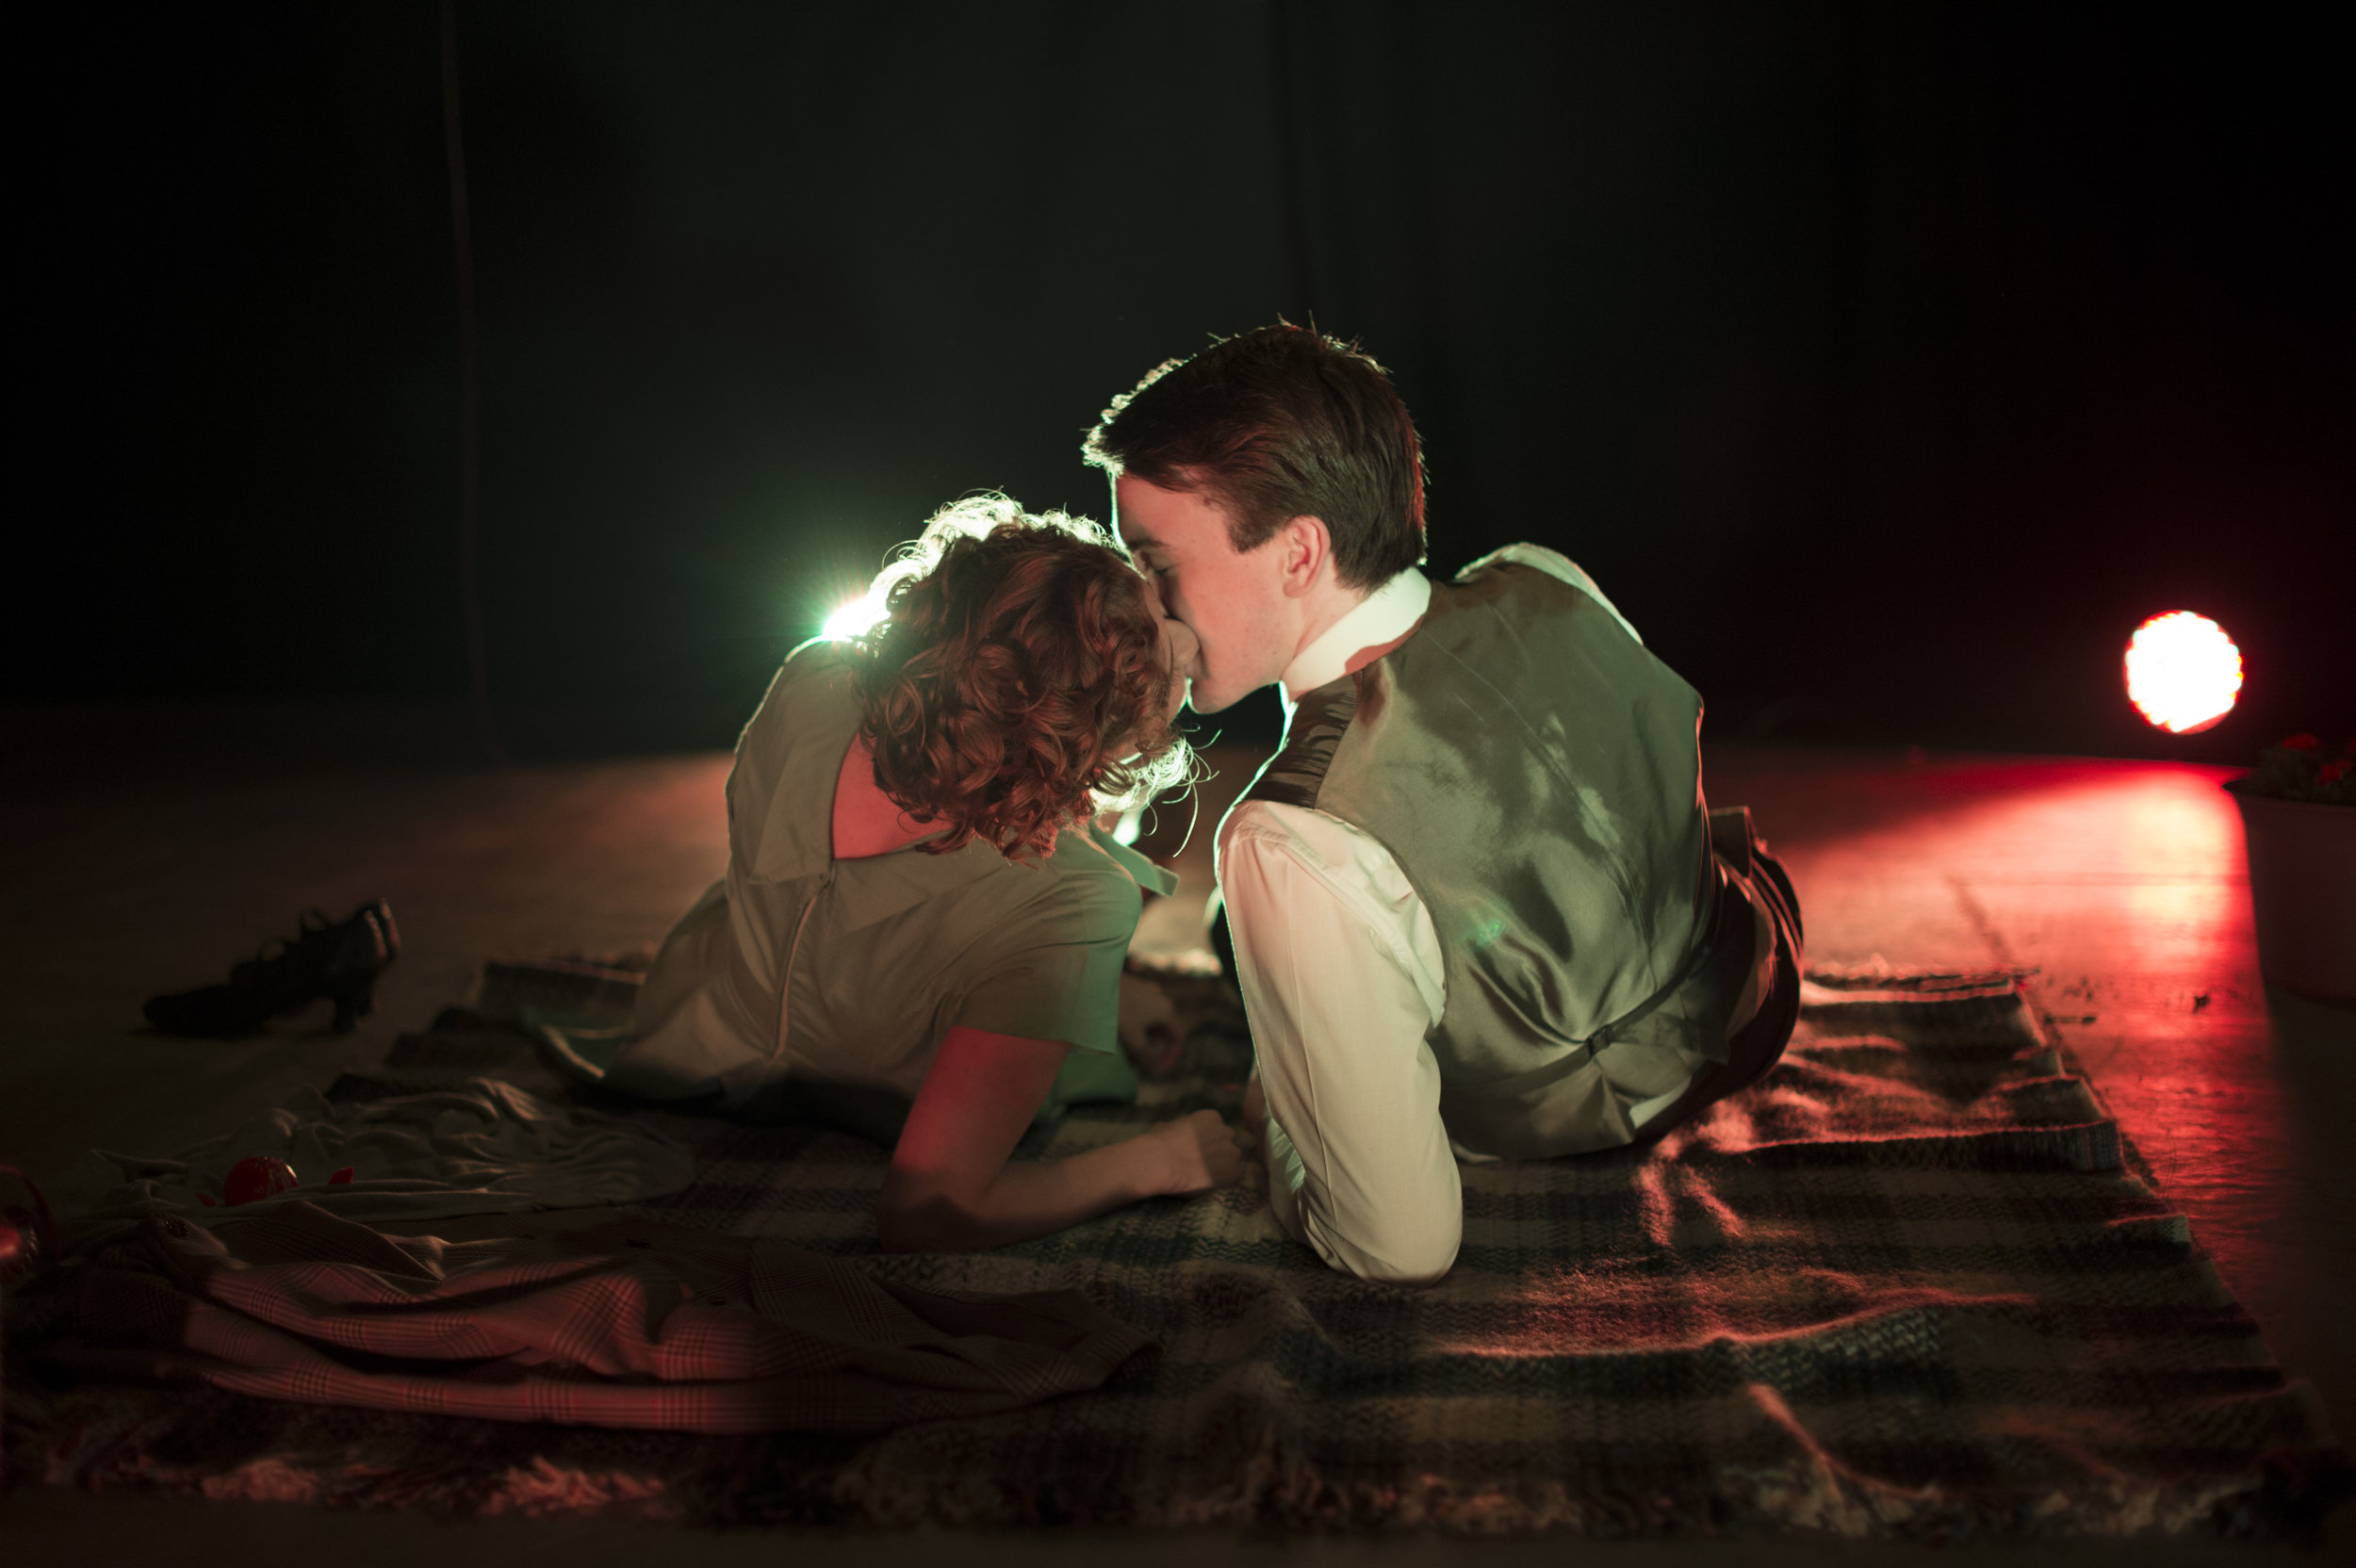 Eva (Jacky Bahbout) and Young Heiden (Tom Sterling)